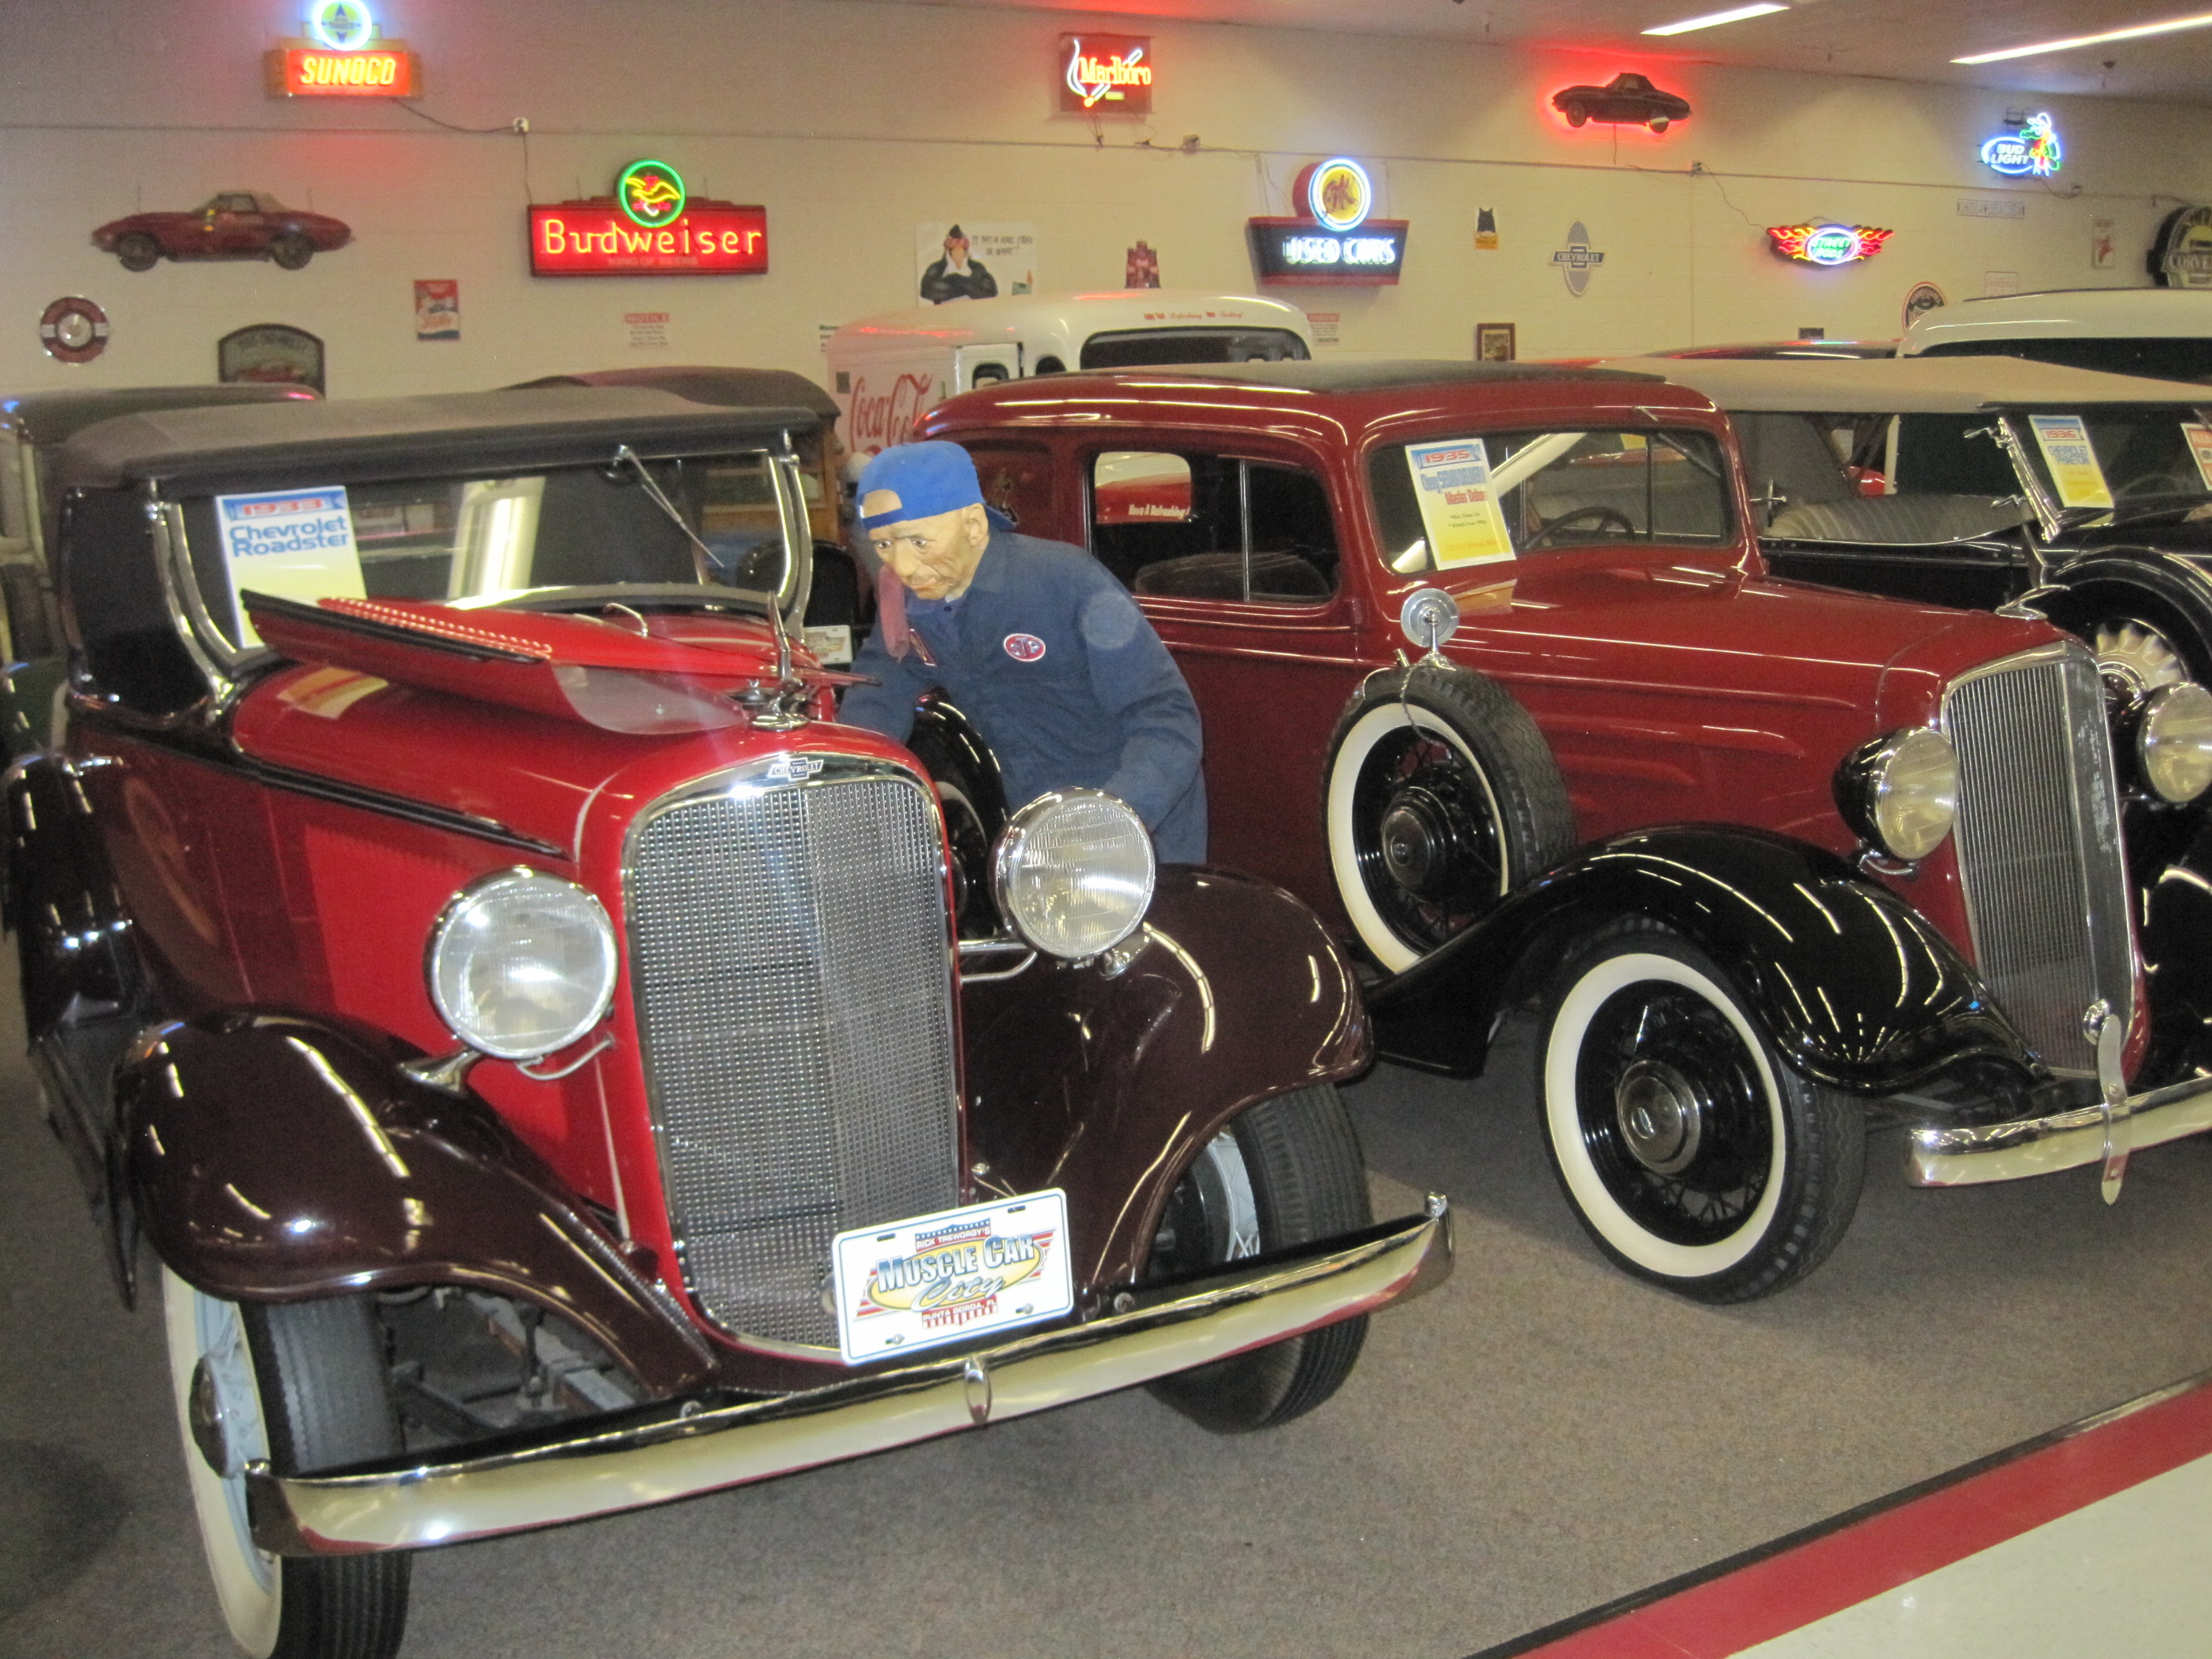 71-Lots of old cars